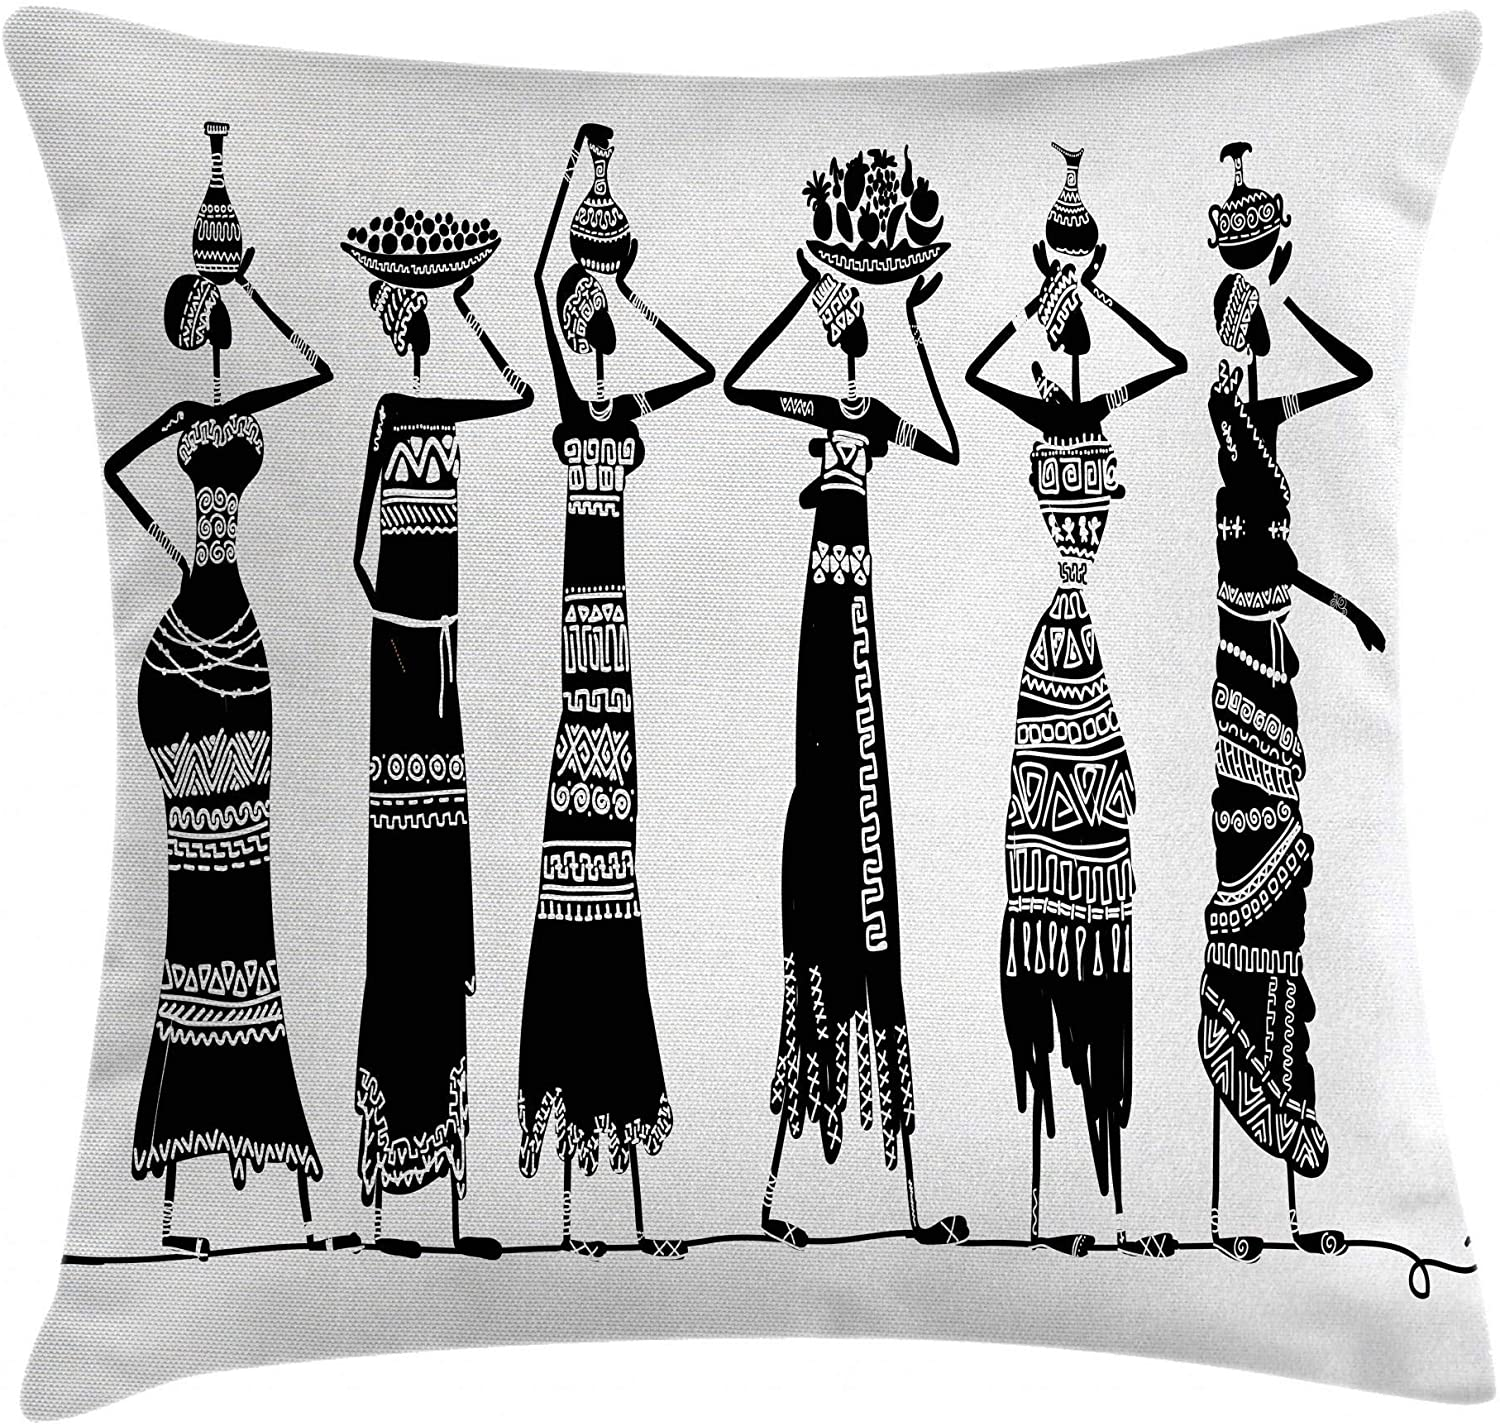 Ambesonne African Throw Pillow Cushion Cover, Sketch of Local Women with Jugs Silhouettes Patterned Dresses, Decorative Square Accent Pillow Case, 20 X 20, Black and White